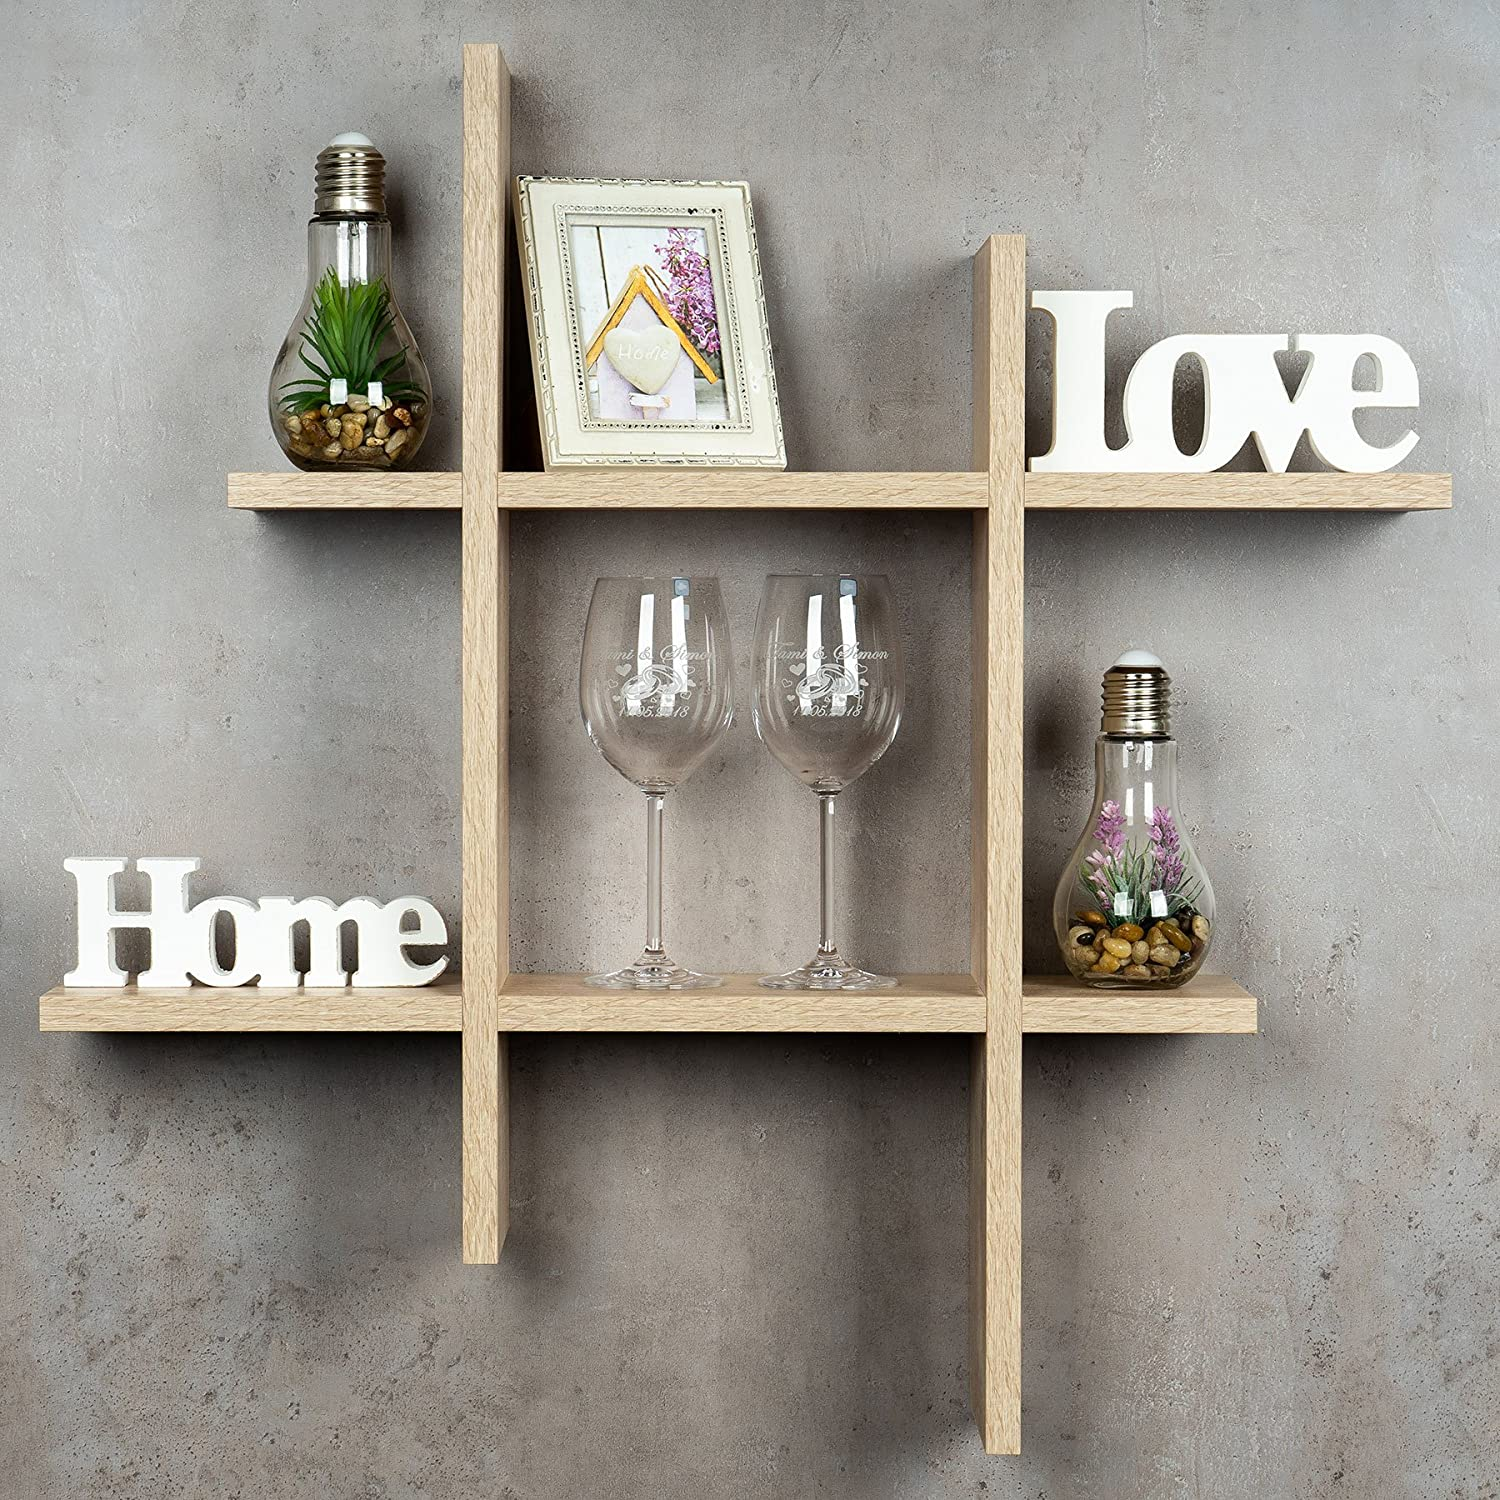 Levandeo Hashtag Regal 75x75cm Wandregal Holz Sonoma Eiche Optik